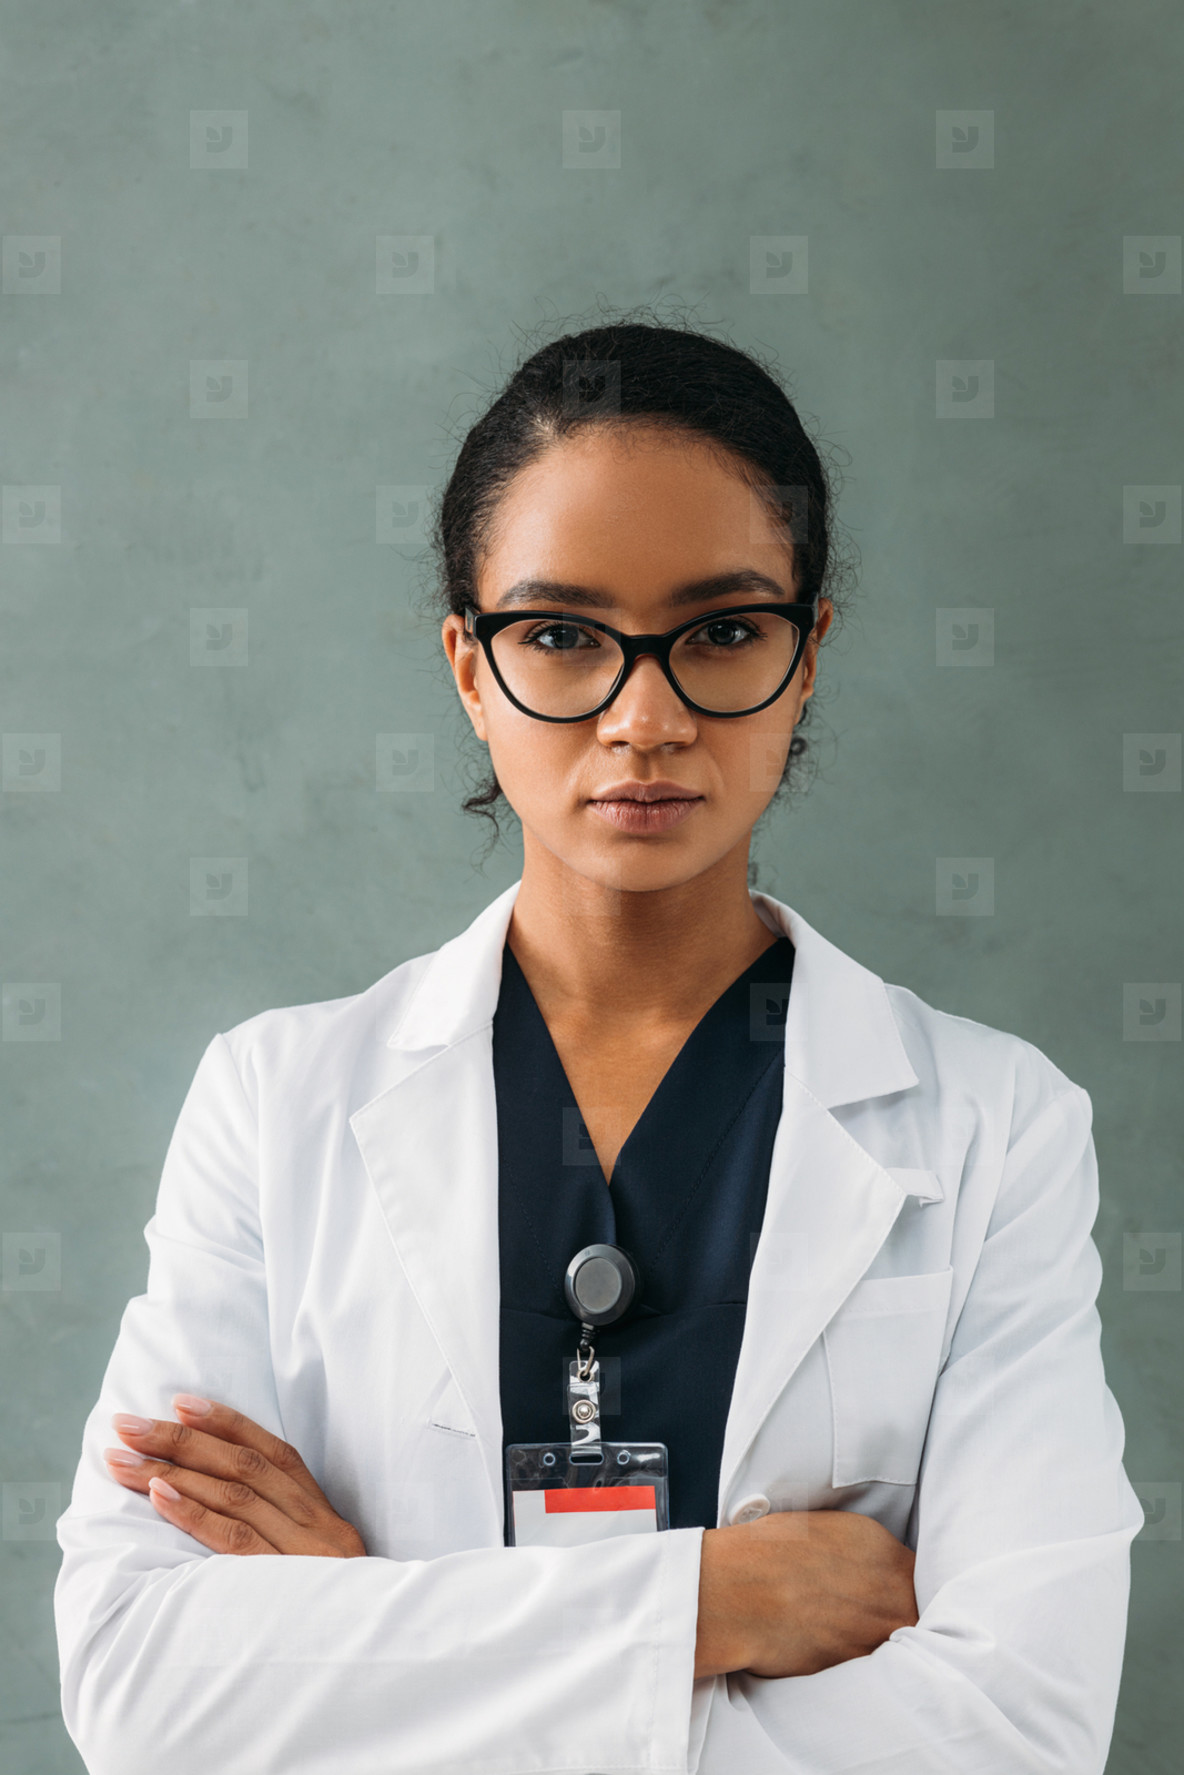 Portrait of a serious medical worker standing with crossed arms